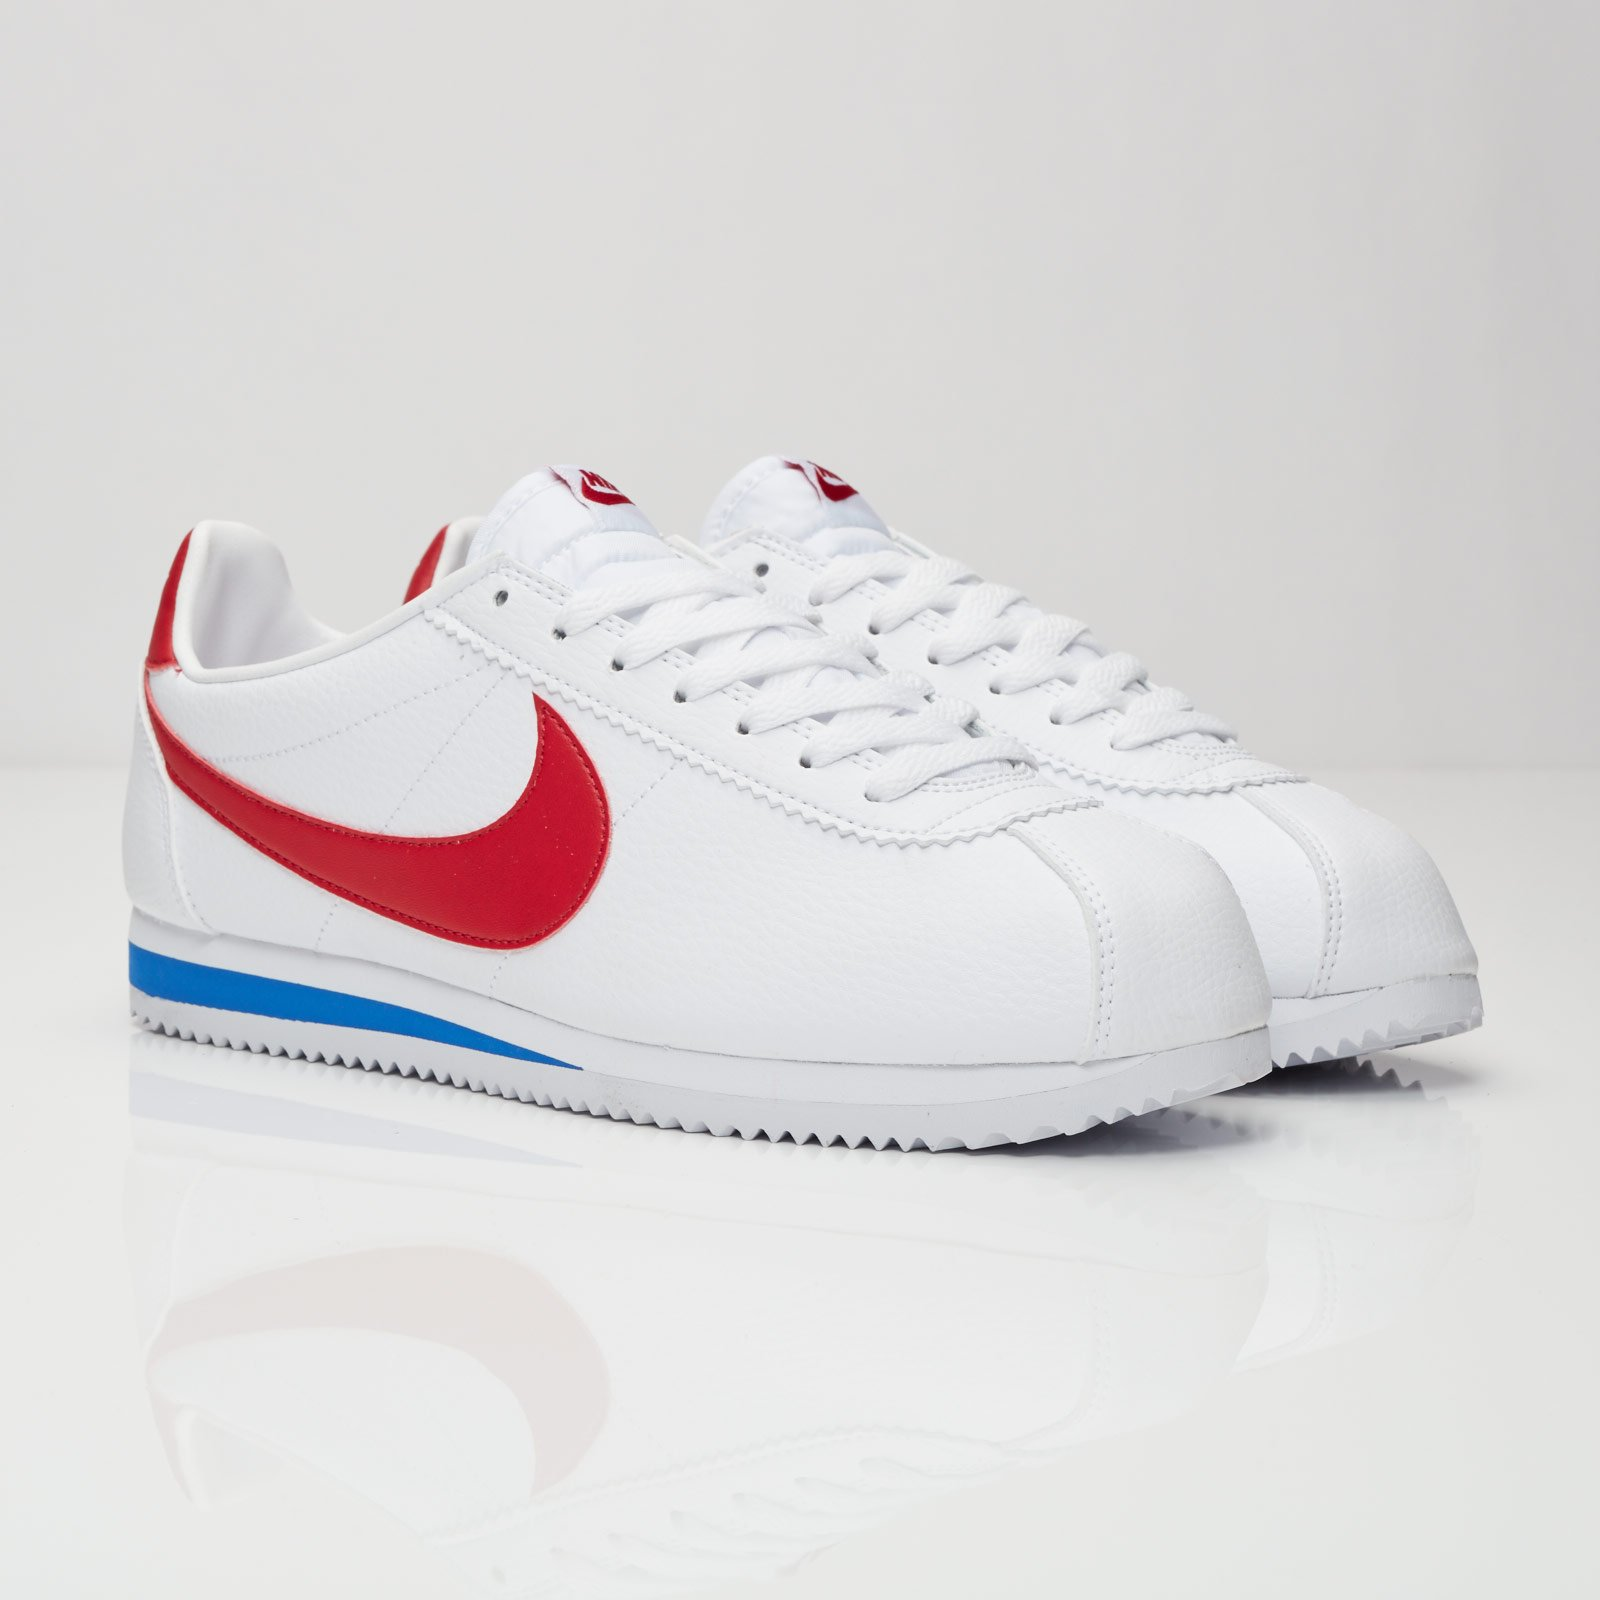 sneakers for cheap 6b960 5c8d8 Nike Classic Cortez Leather - 749571-154 - Sneakersnstuff ...